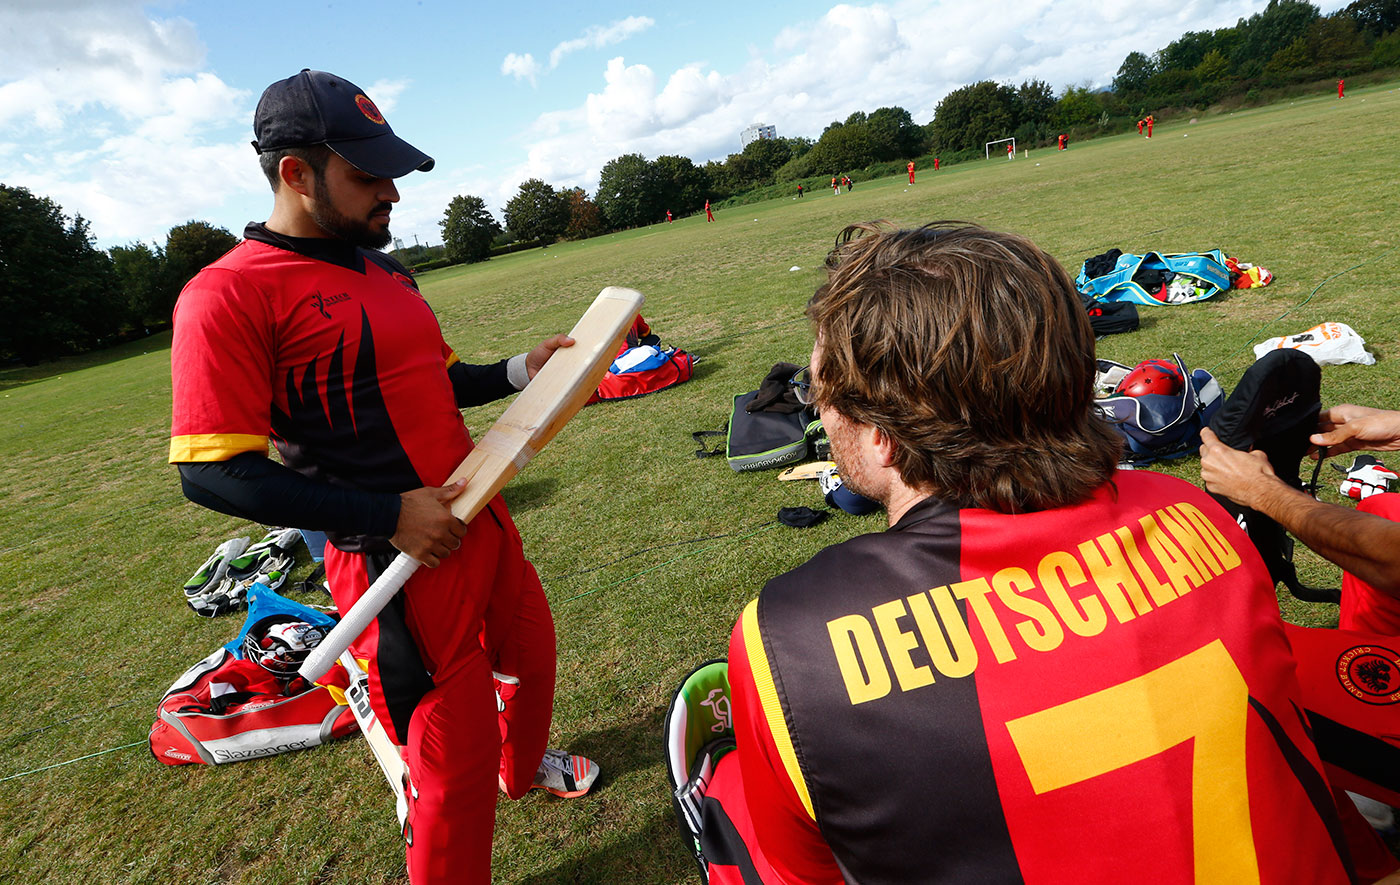 Refugees from Pakistan and Afghanistan have helped popularise cricket in Germany